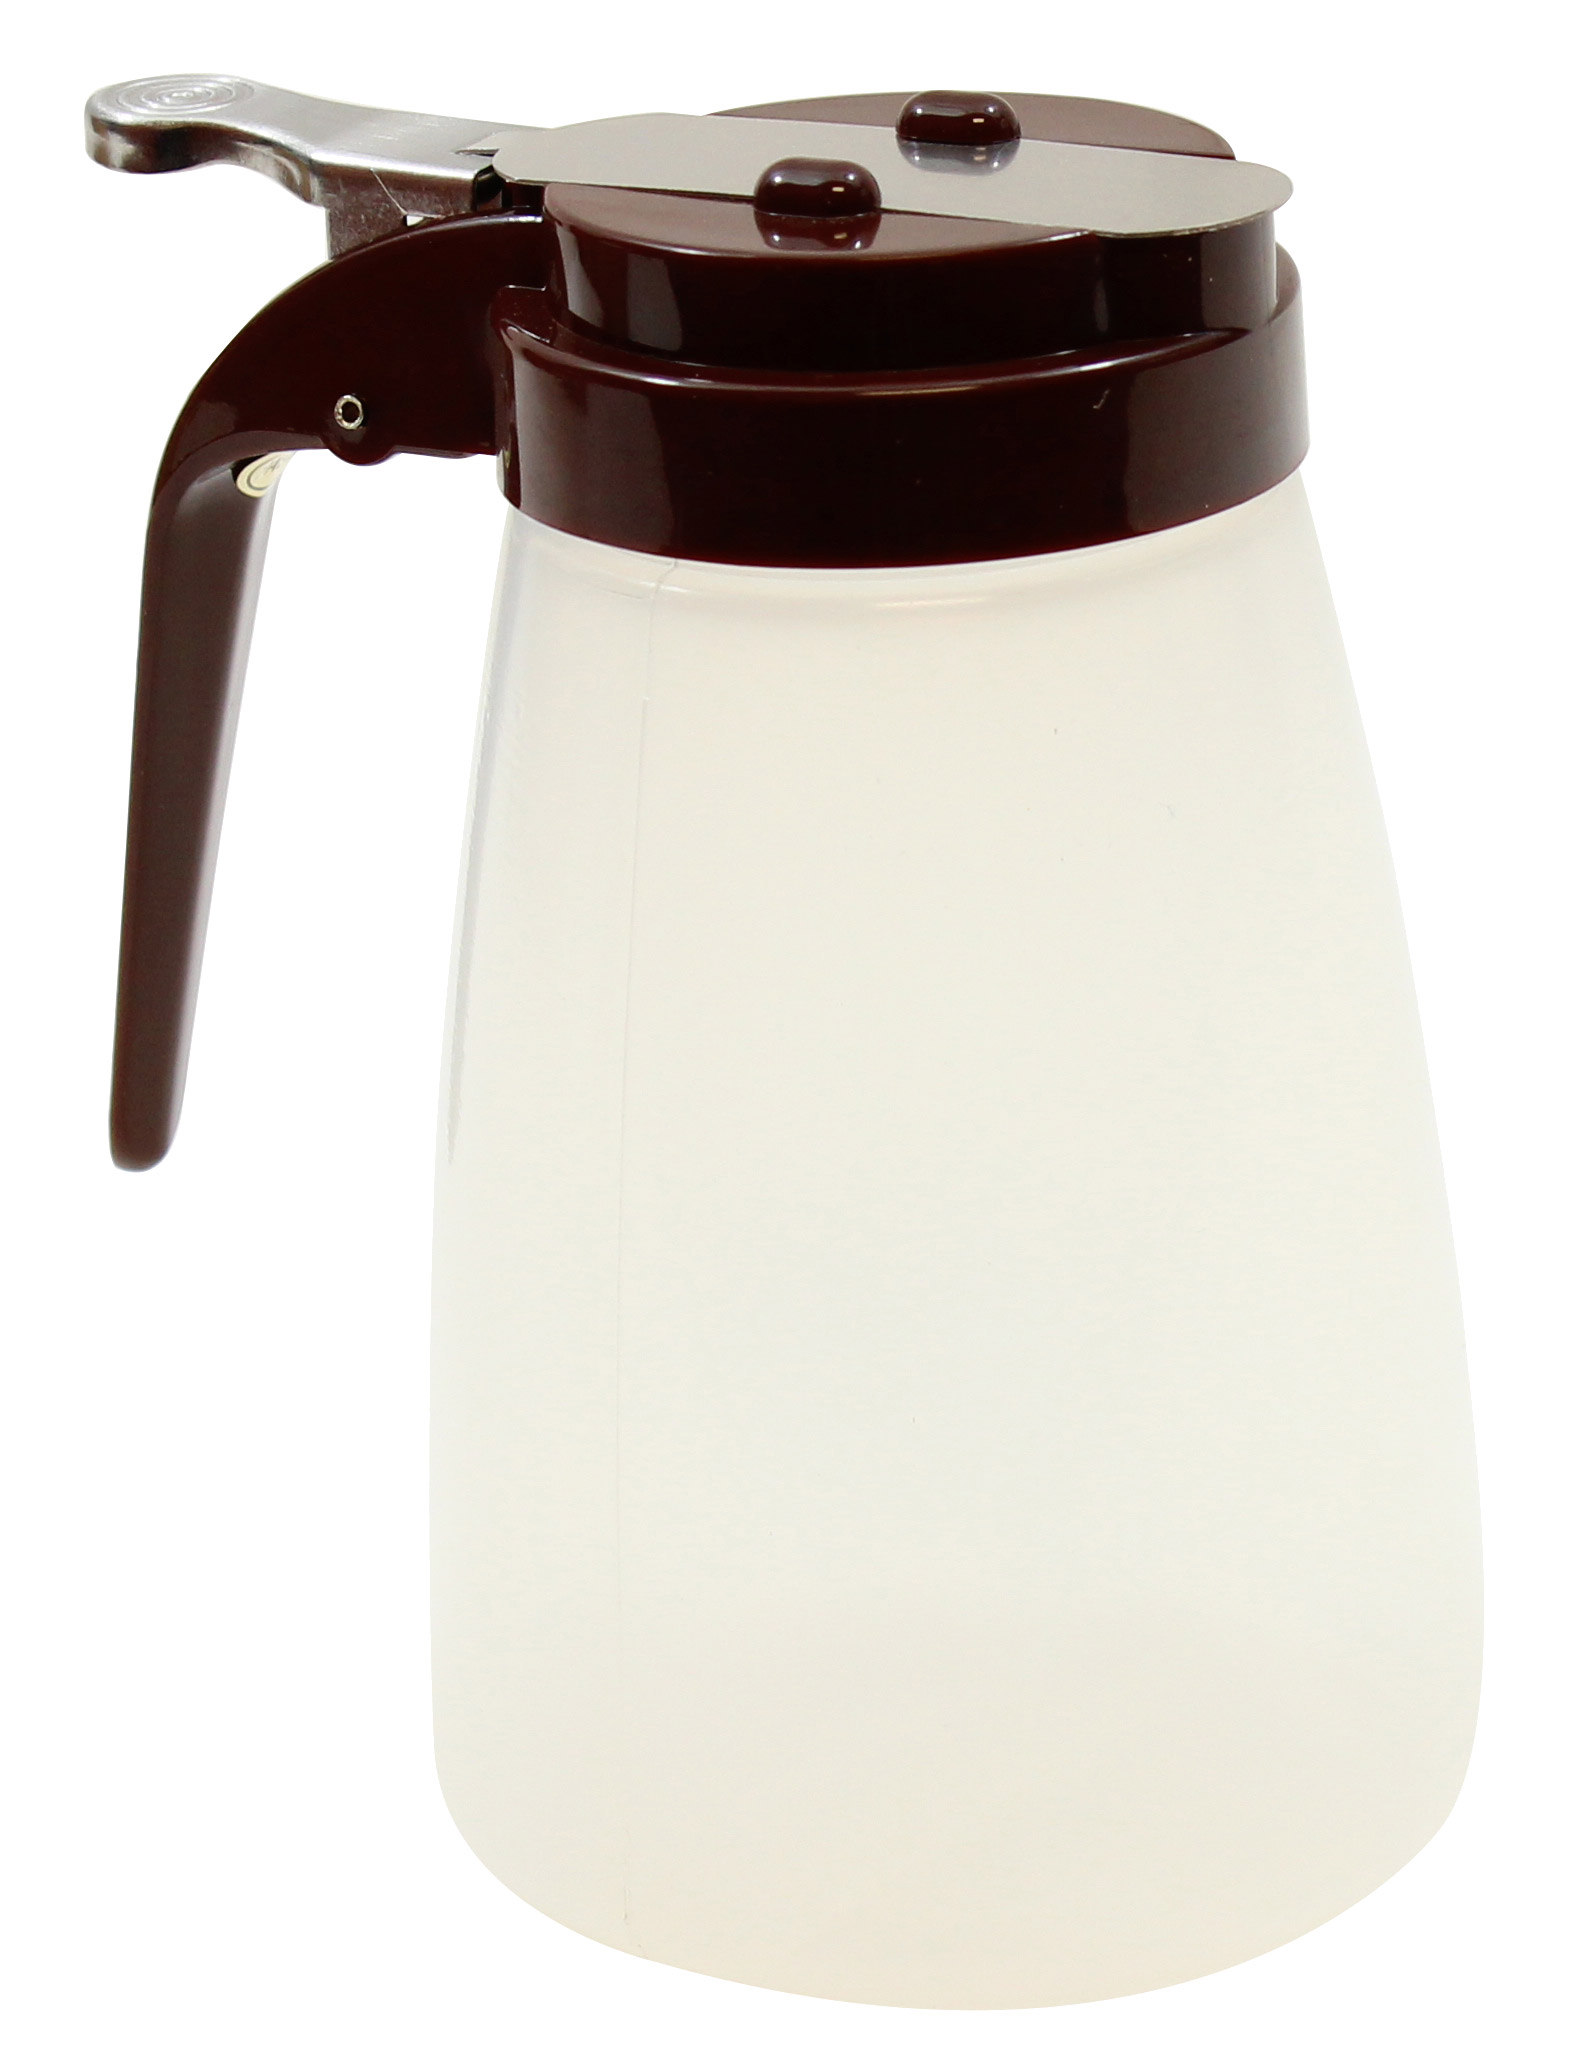 TableCraft Products PP10B syrup pourer